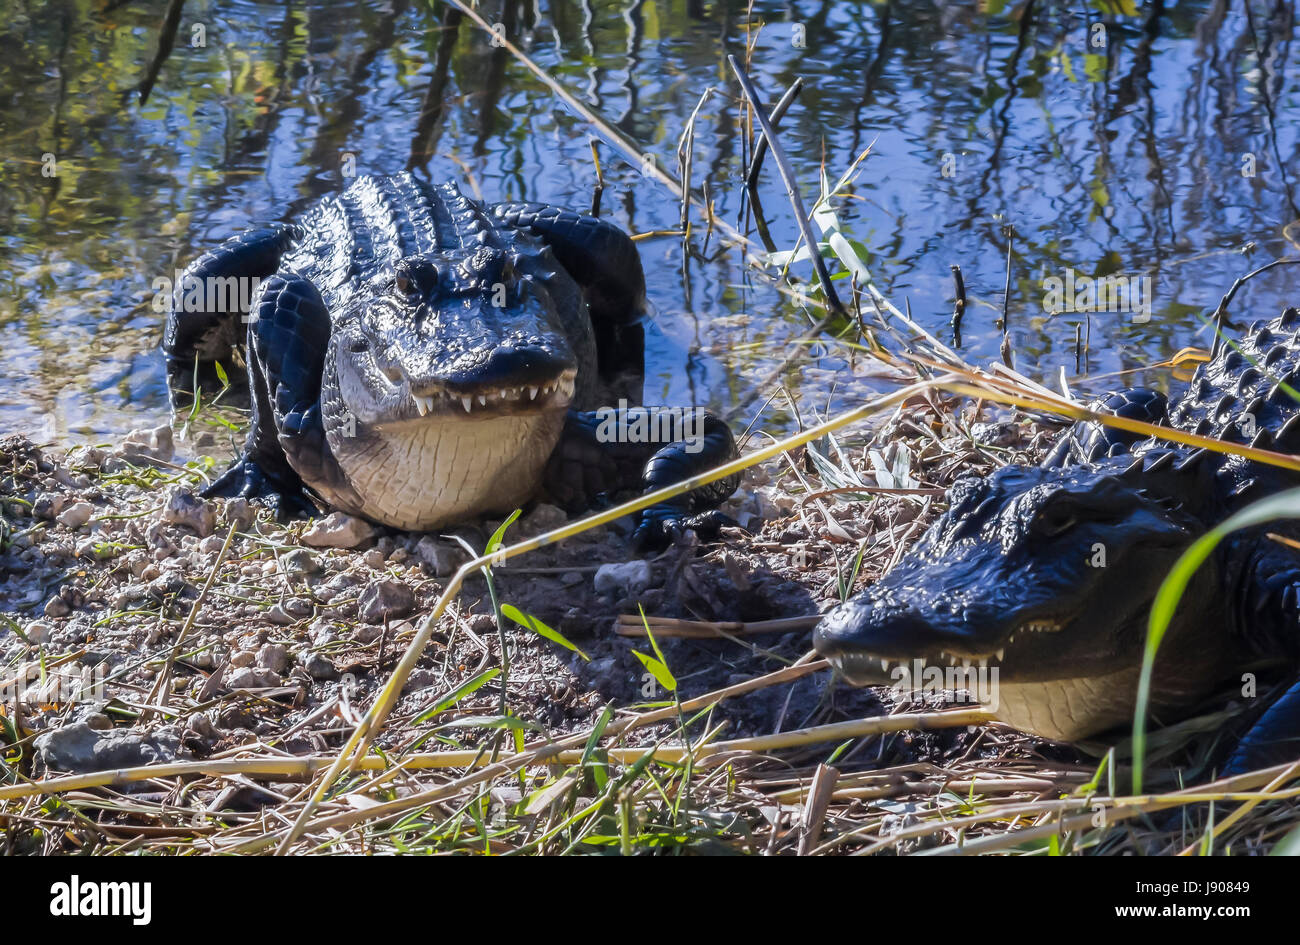 American Alligator in the Everglades National Park - Stock Image